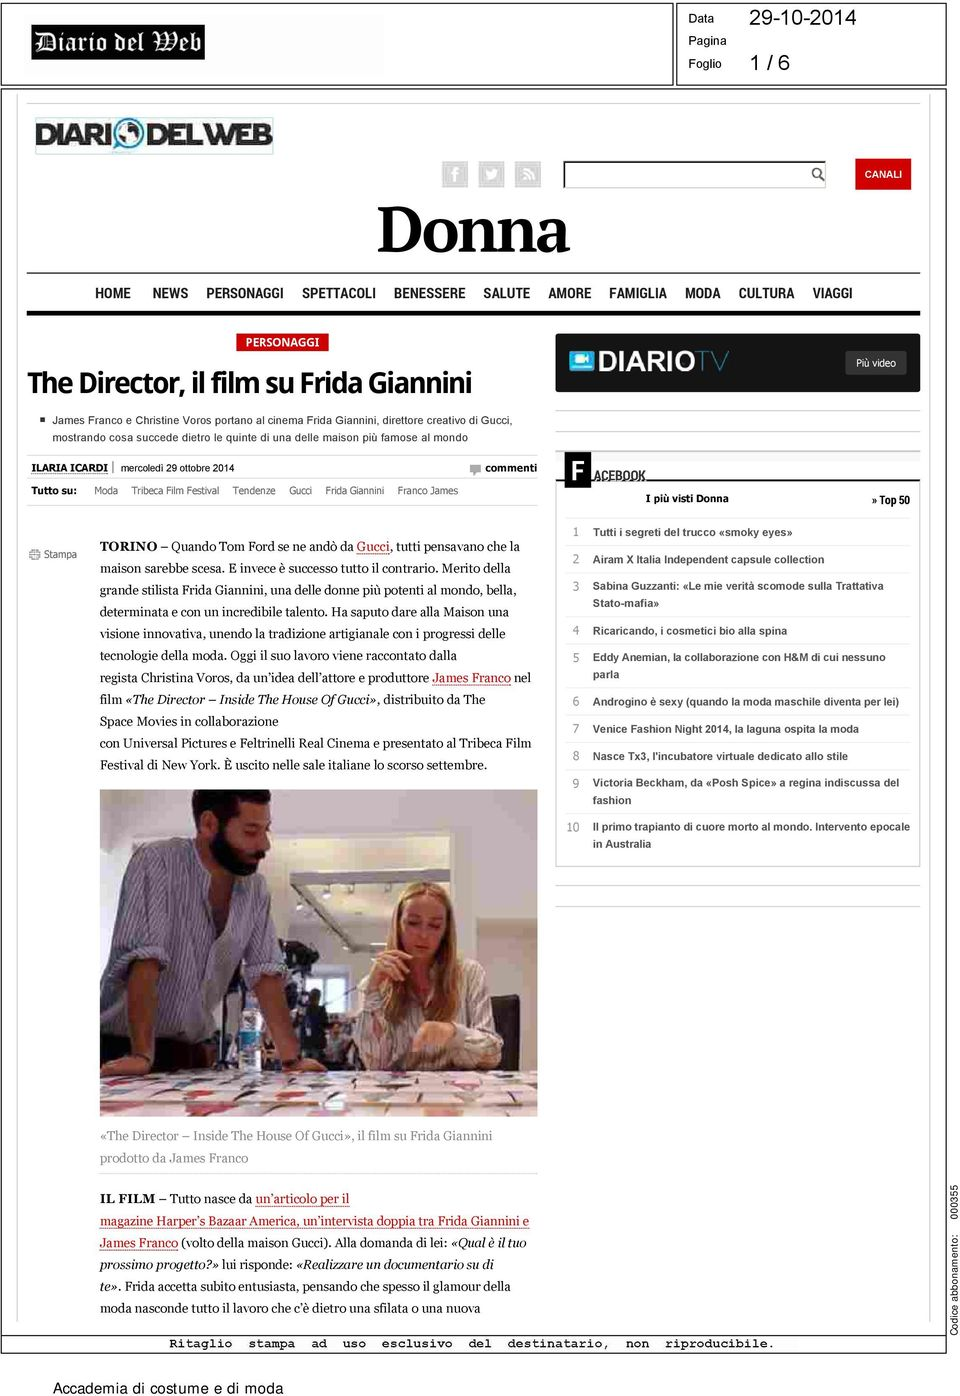 su: Moda Tribeca Film Festival Tendenze Gucci Frida Giannini Franco James F ACEBOOK I più visti Donna» Top 50 Stampa TORINO Quando Tom Ford se ne andò da Gucci, tutti pensavano che la maison sarebbe